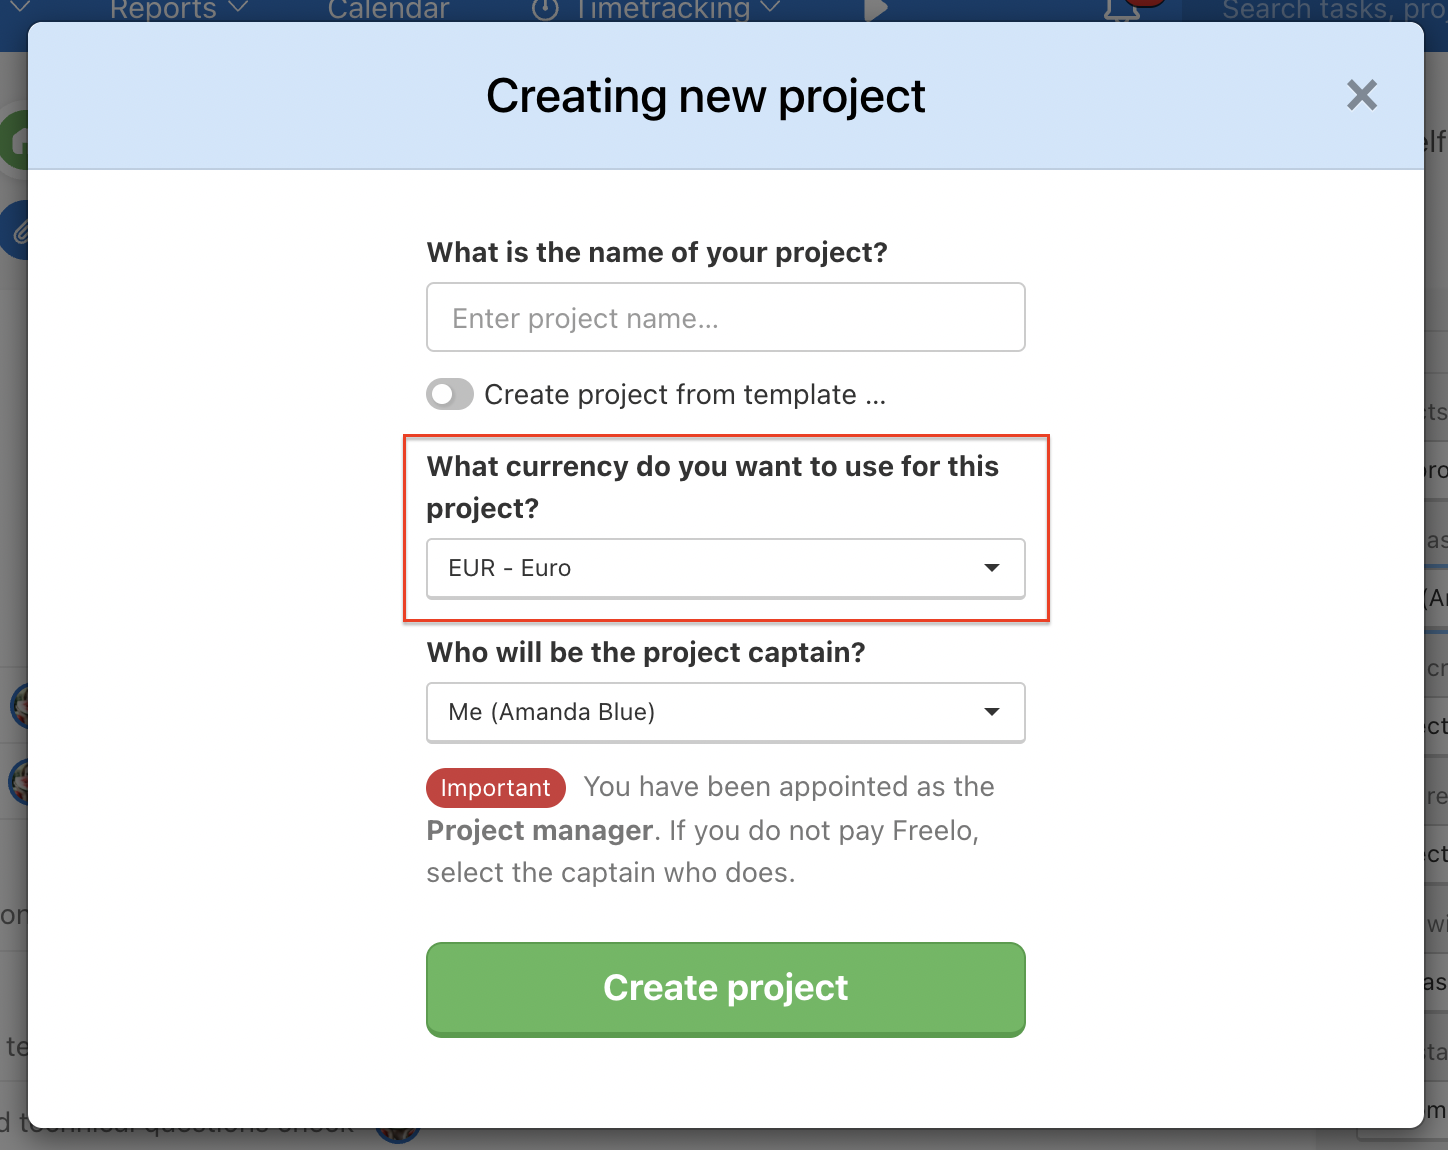 Select the correct currency for your project.